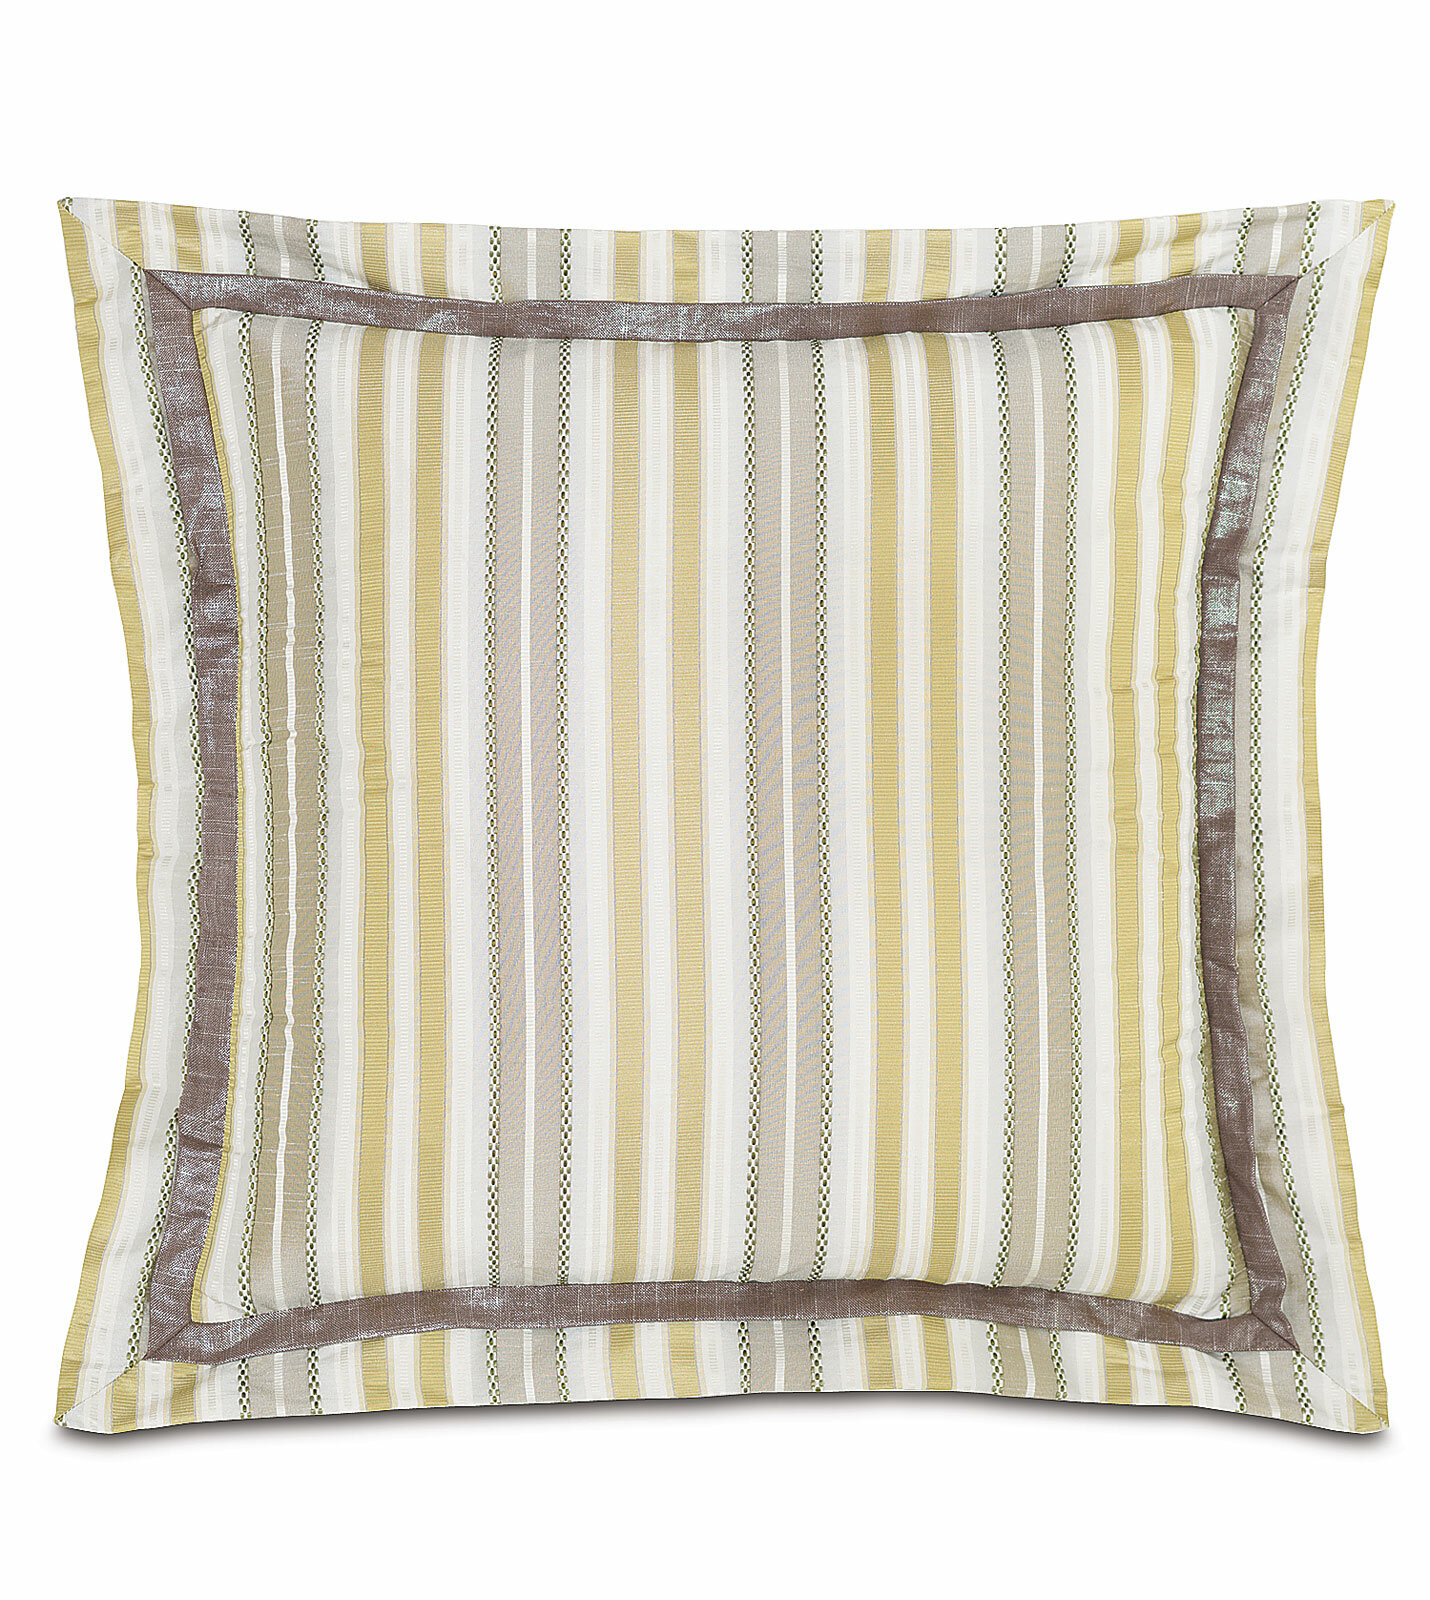 Eastern Accents Wakefield Euro Pillow Wayfair